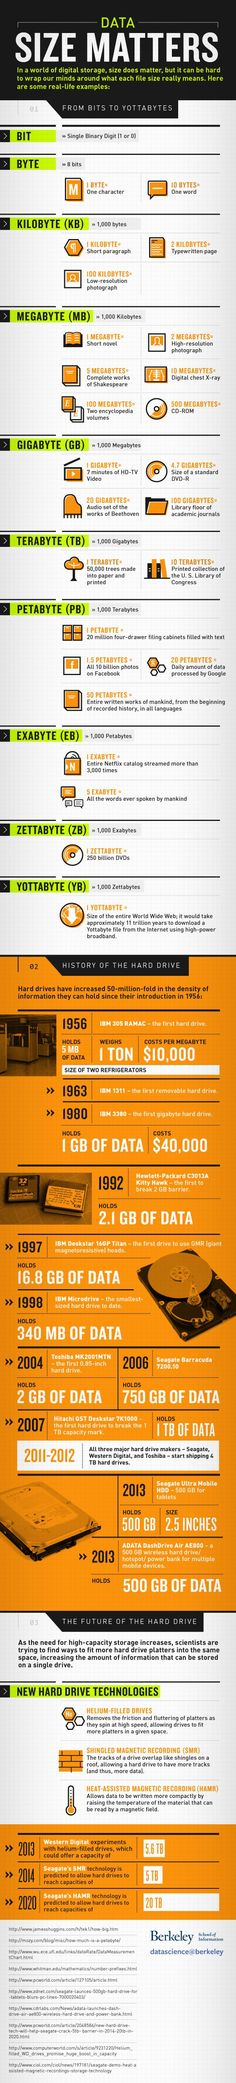 Data Size Matters!Most of you are working on your computer all day long, save what you have created and don't think much about it after that. Well for starters, did you know that just 5 MB of hard drive space cost $10,000 back in 1956???? See more amazing facts on the infographic